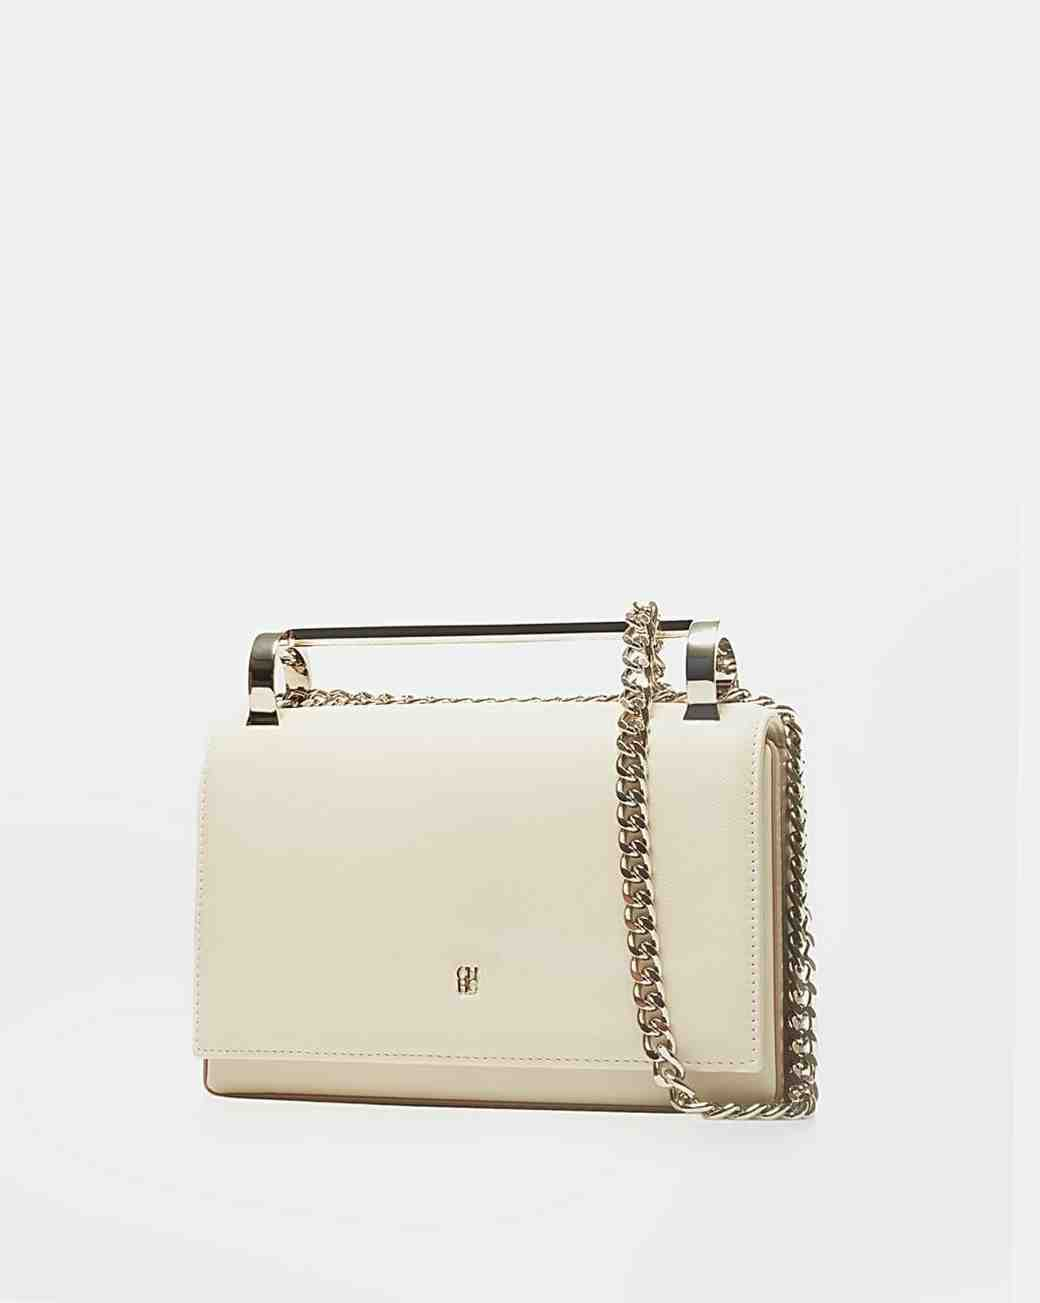 Carolina Herrera White Bridal Clutch